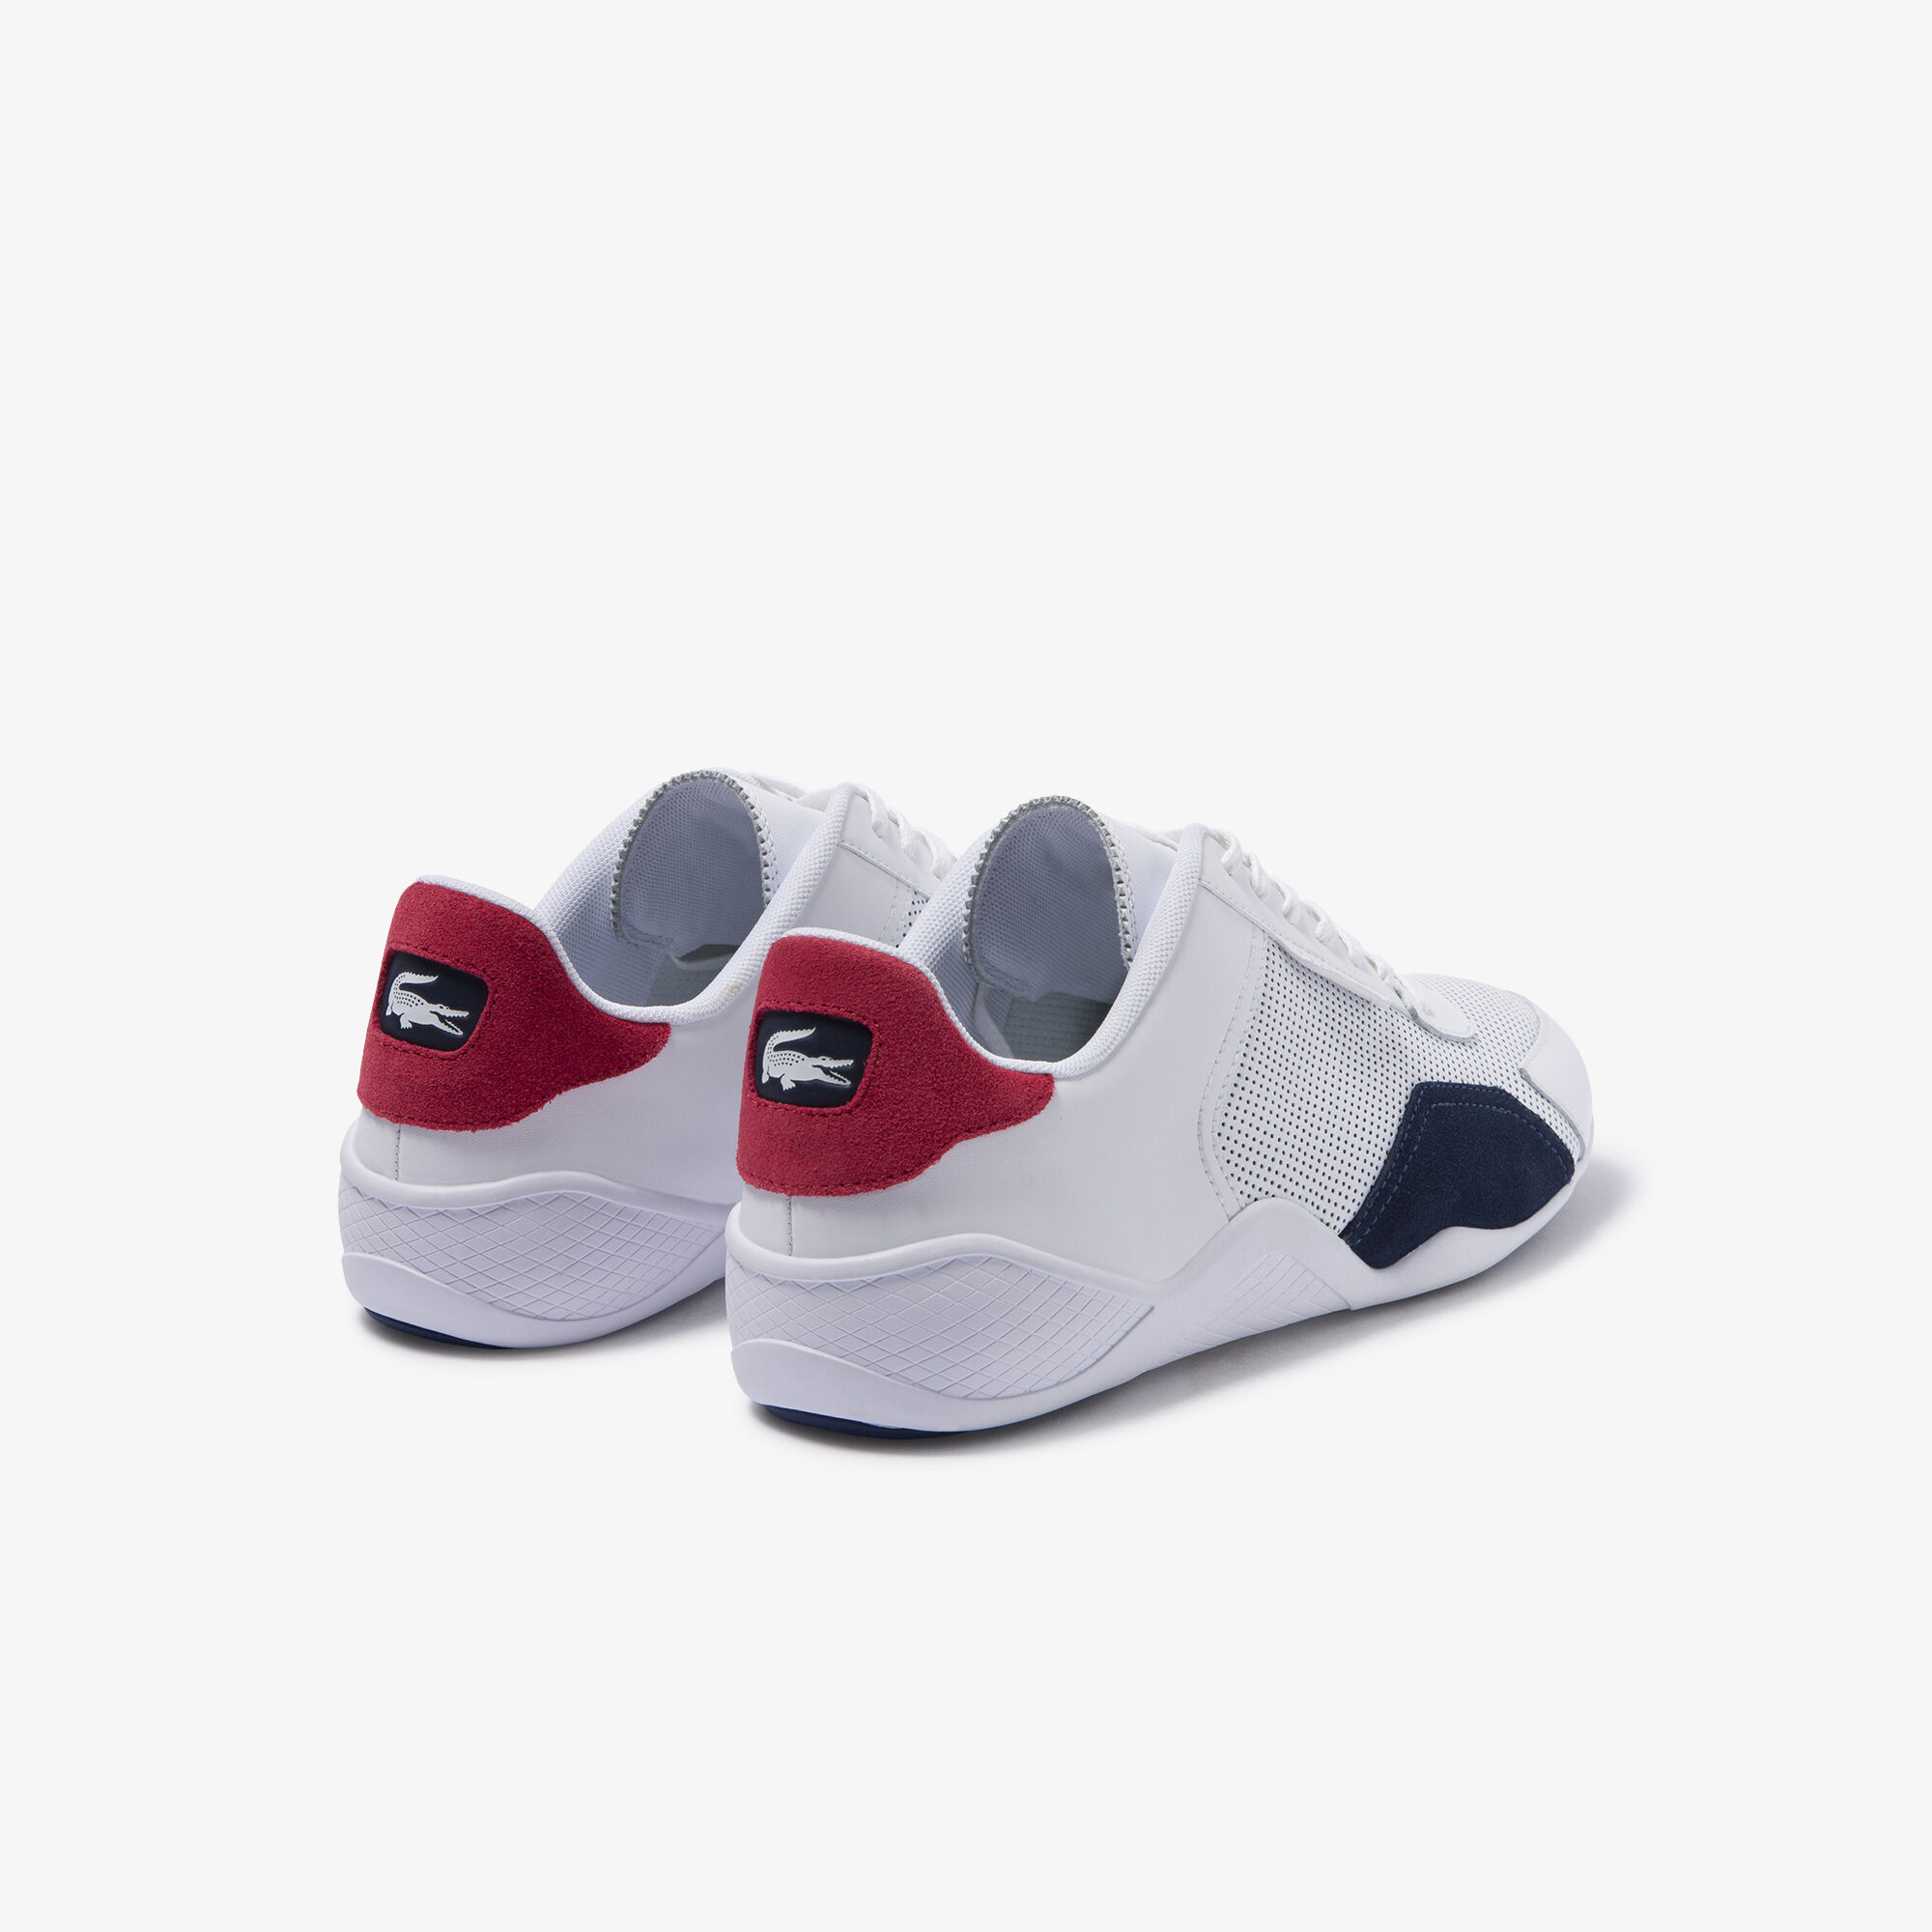 Men's Hapona Leather and Synthetic Trainers